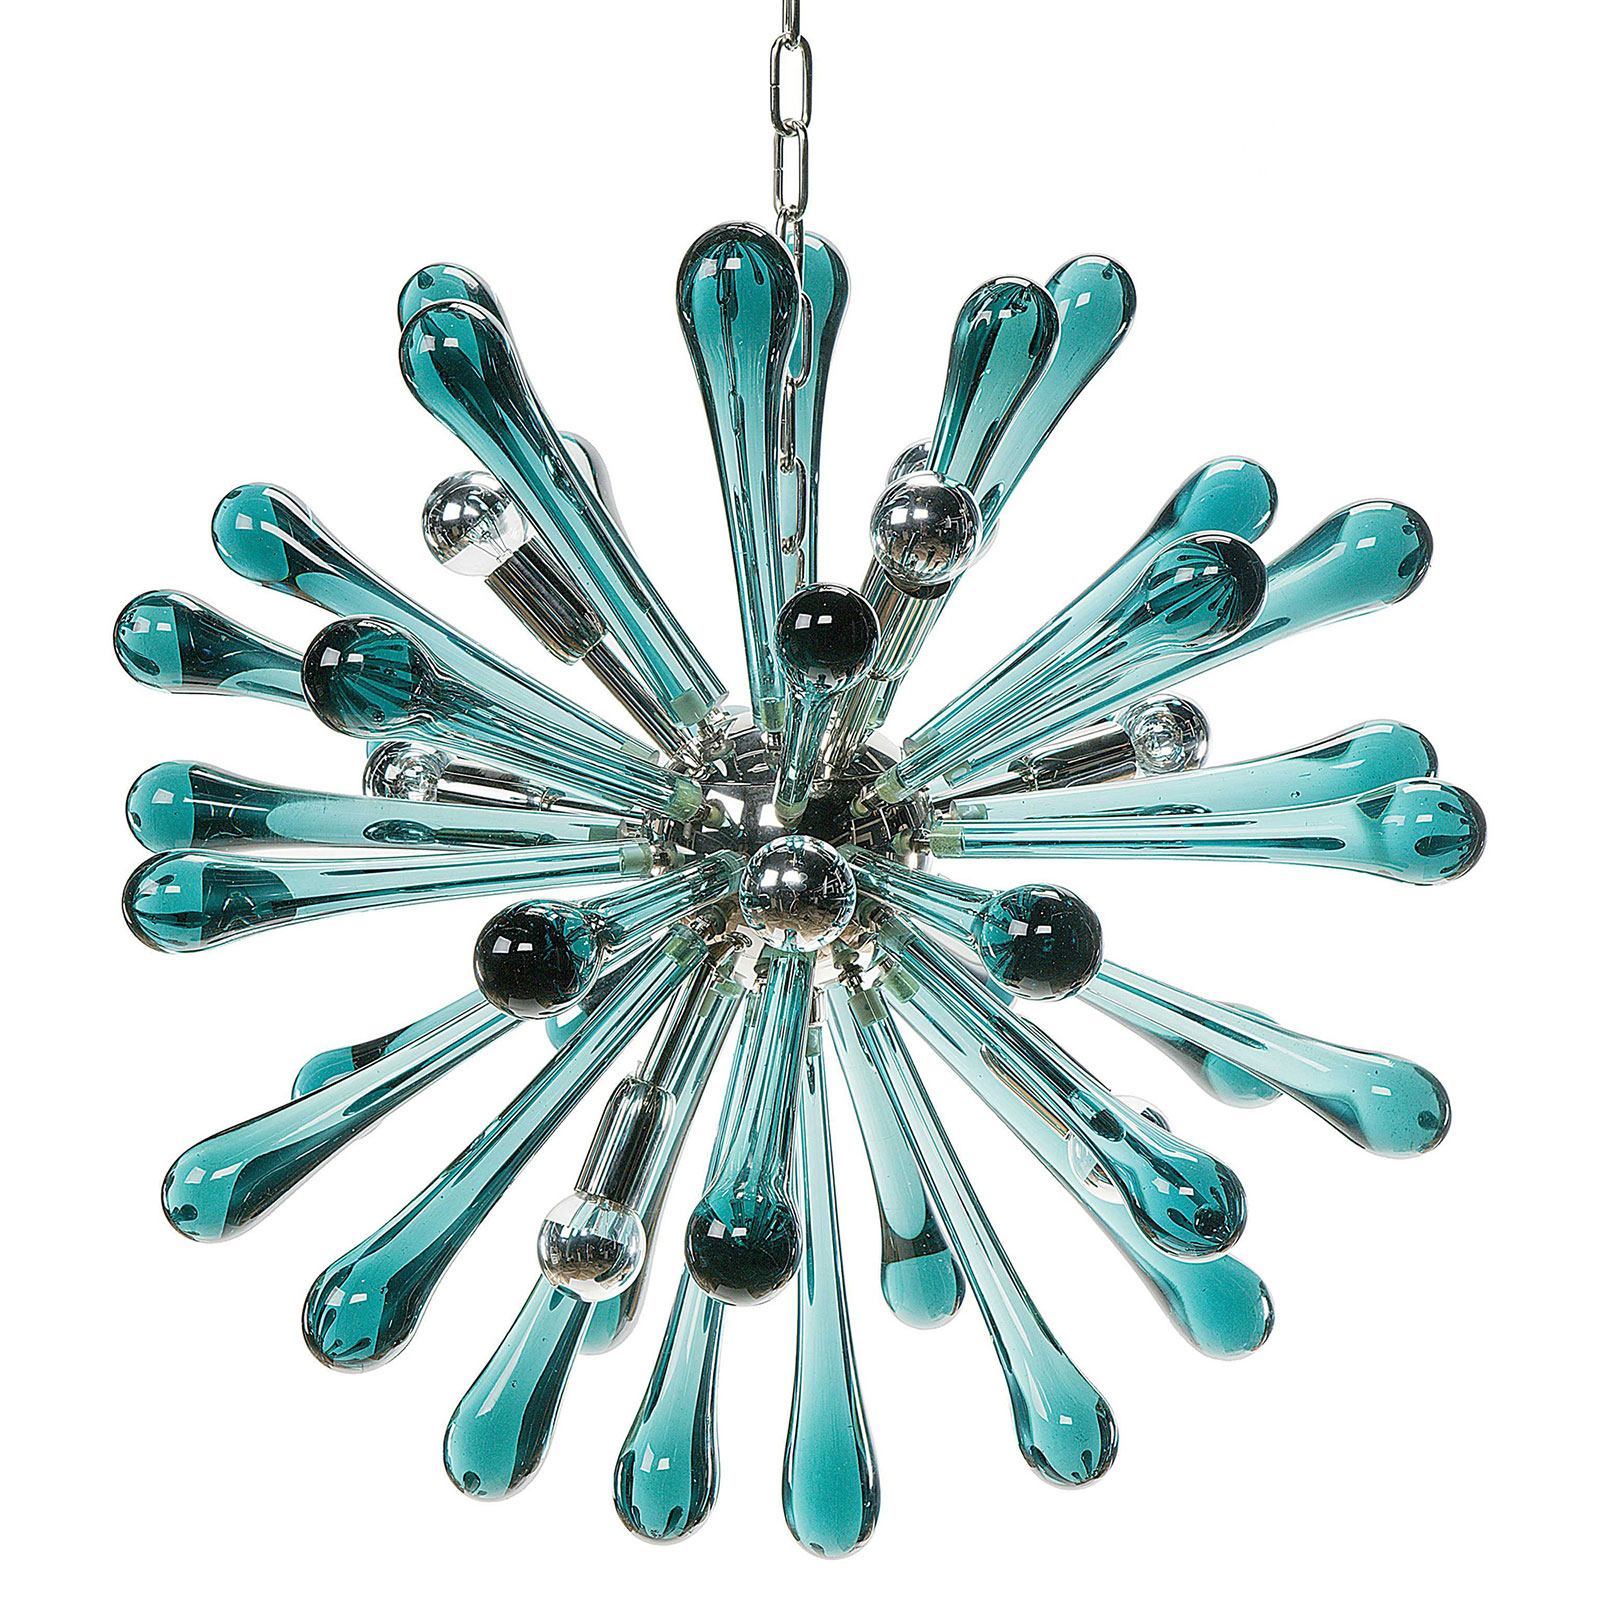 Messala Retro Modern Turquoise Glass Burst Chandelier